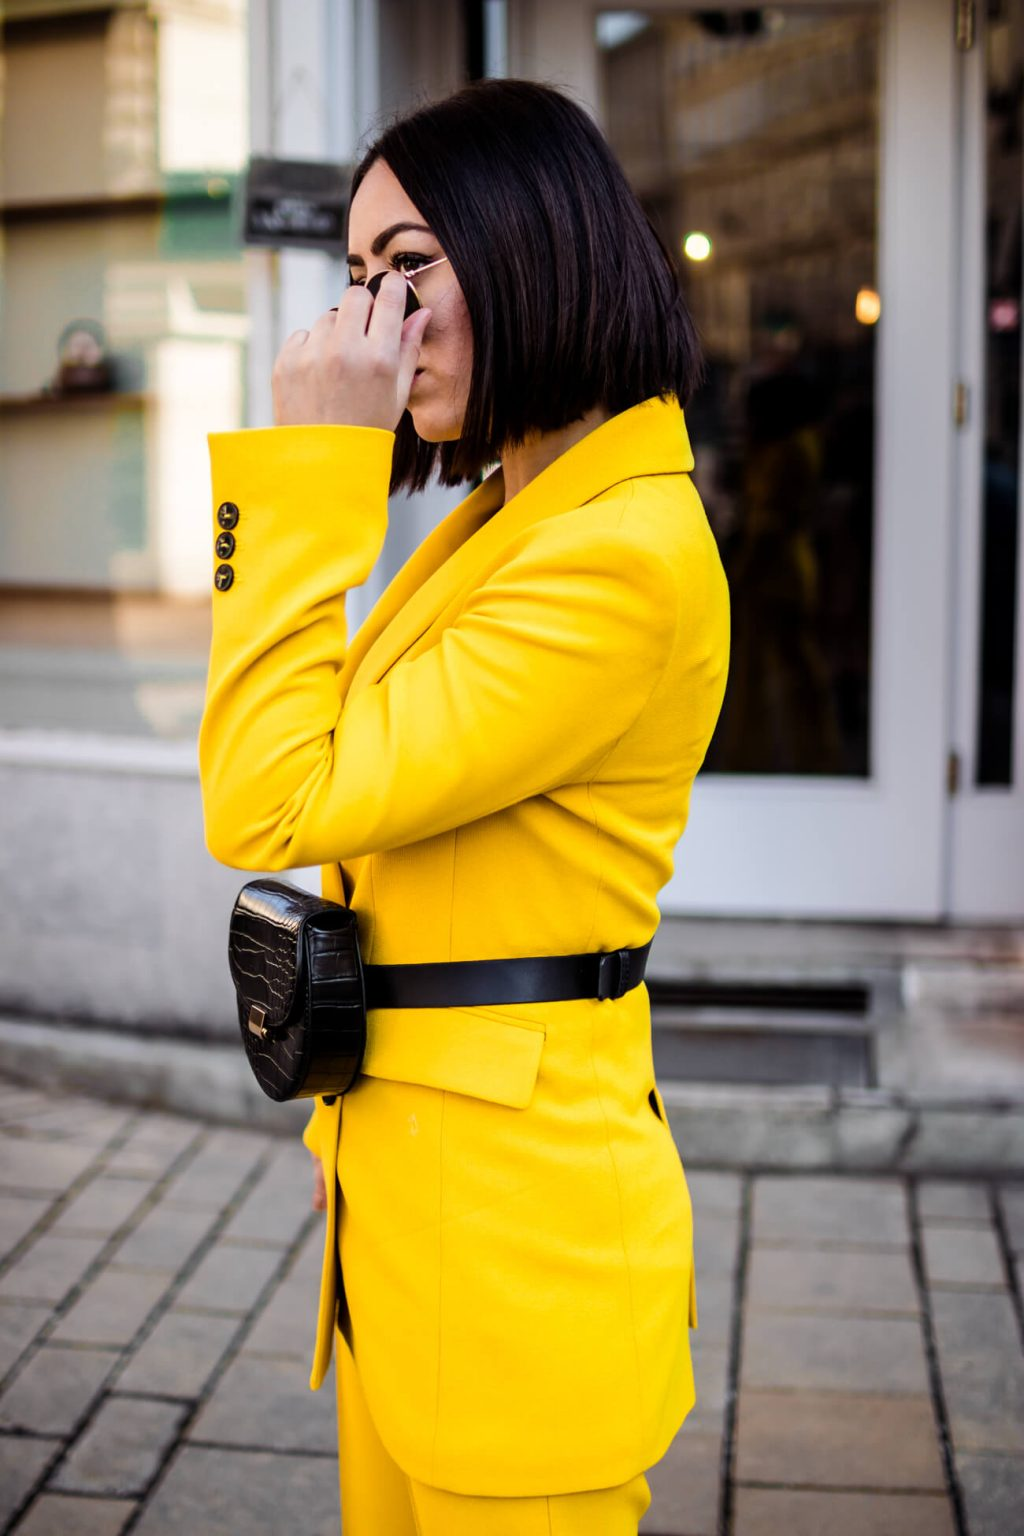 How to wear yellow?